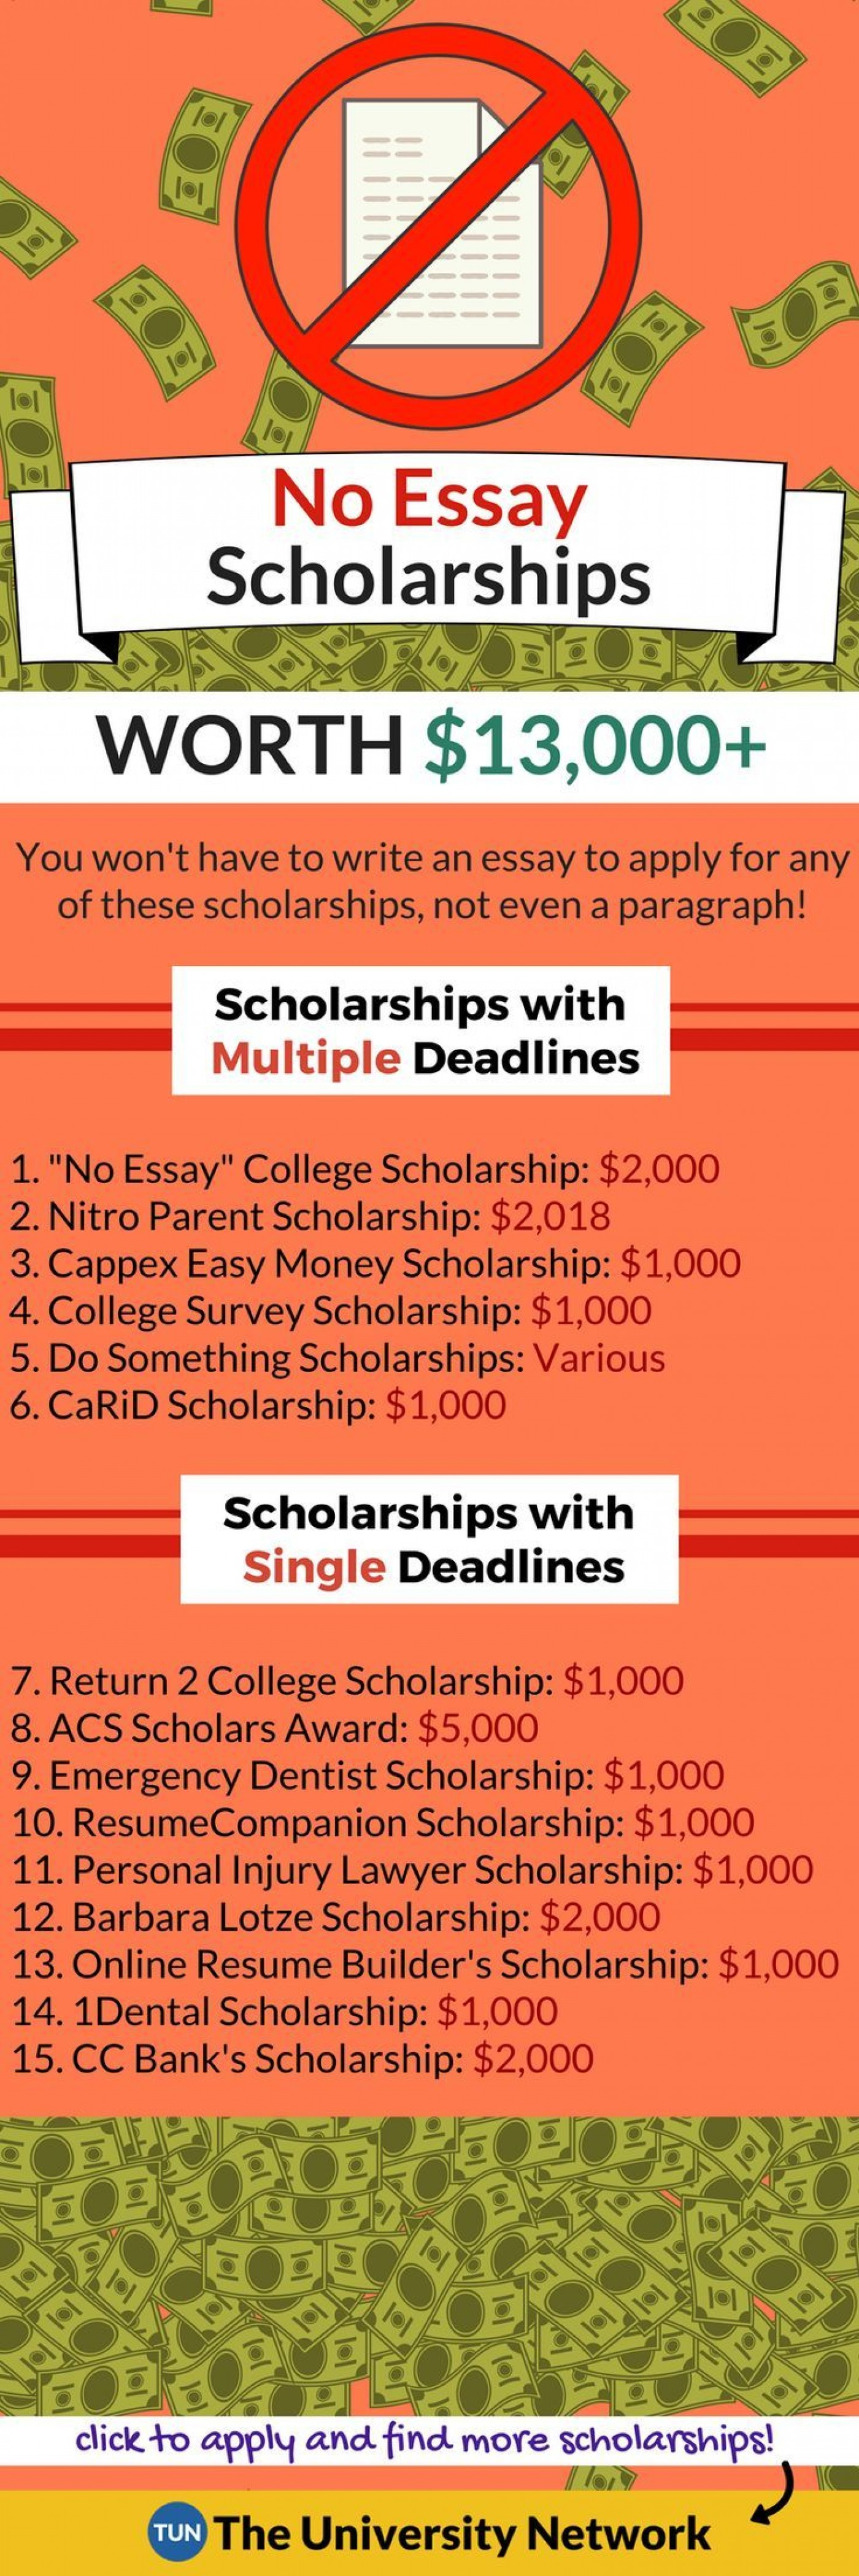 013 Essay Example No Exceptional Scholarships For Undergraduates College Students 2019 1400